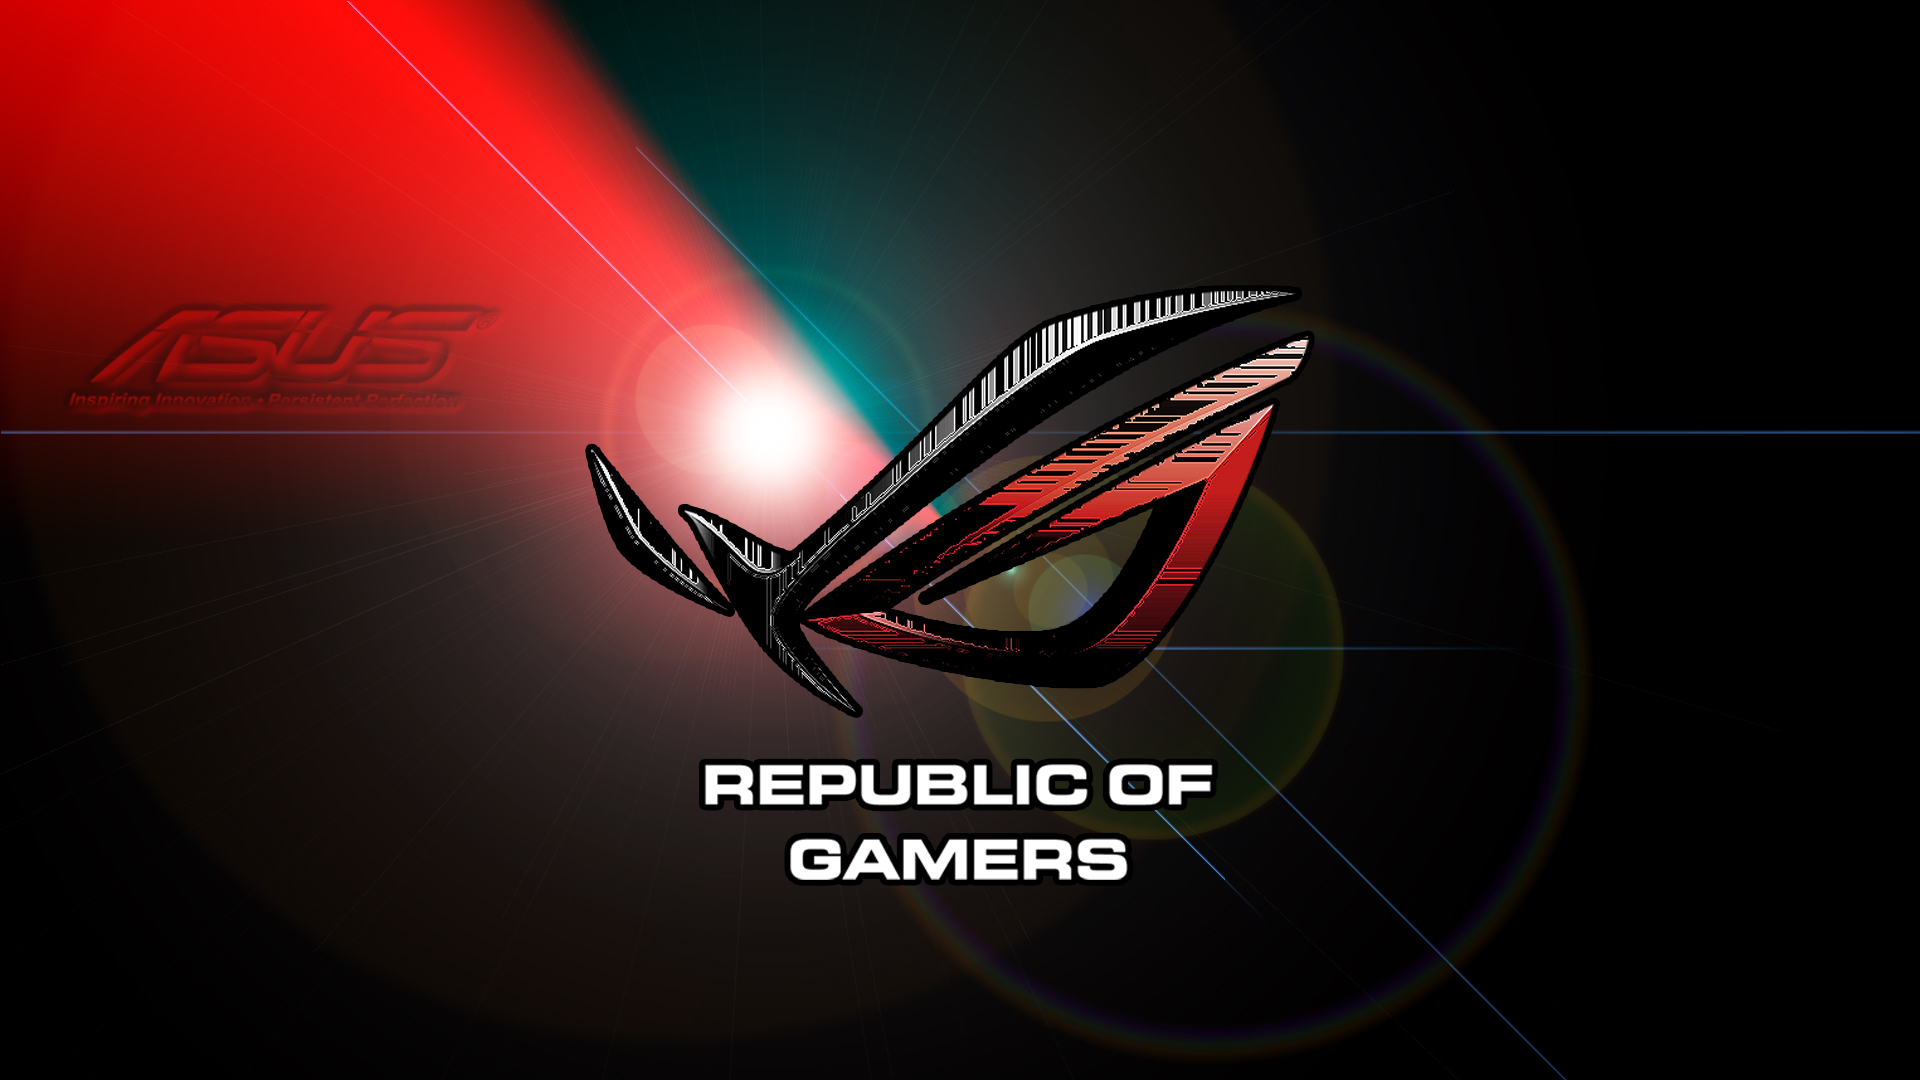 Wallpaper.wiki-Wallpapers-Asus-Rog-HD-PIC-WPC0011079